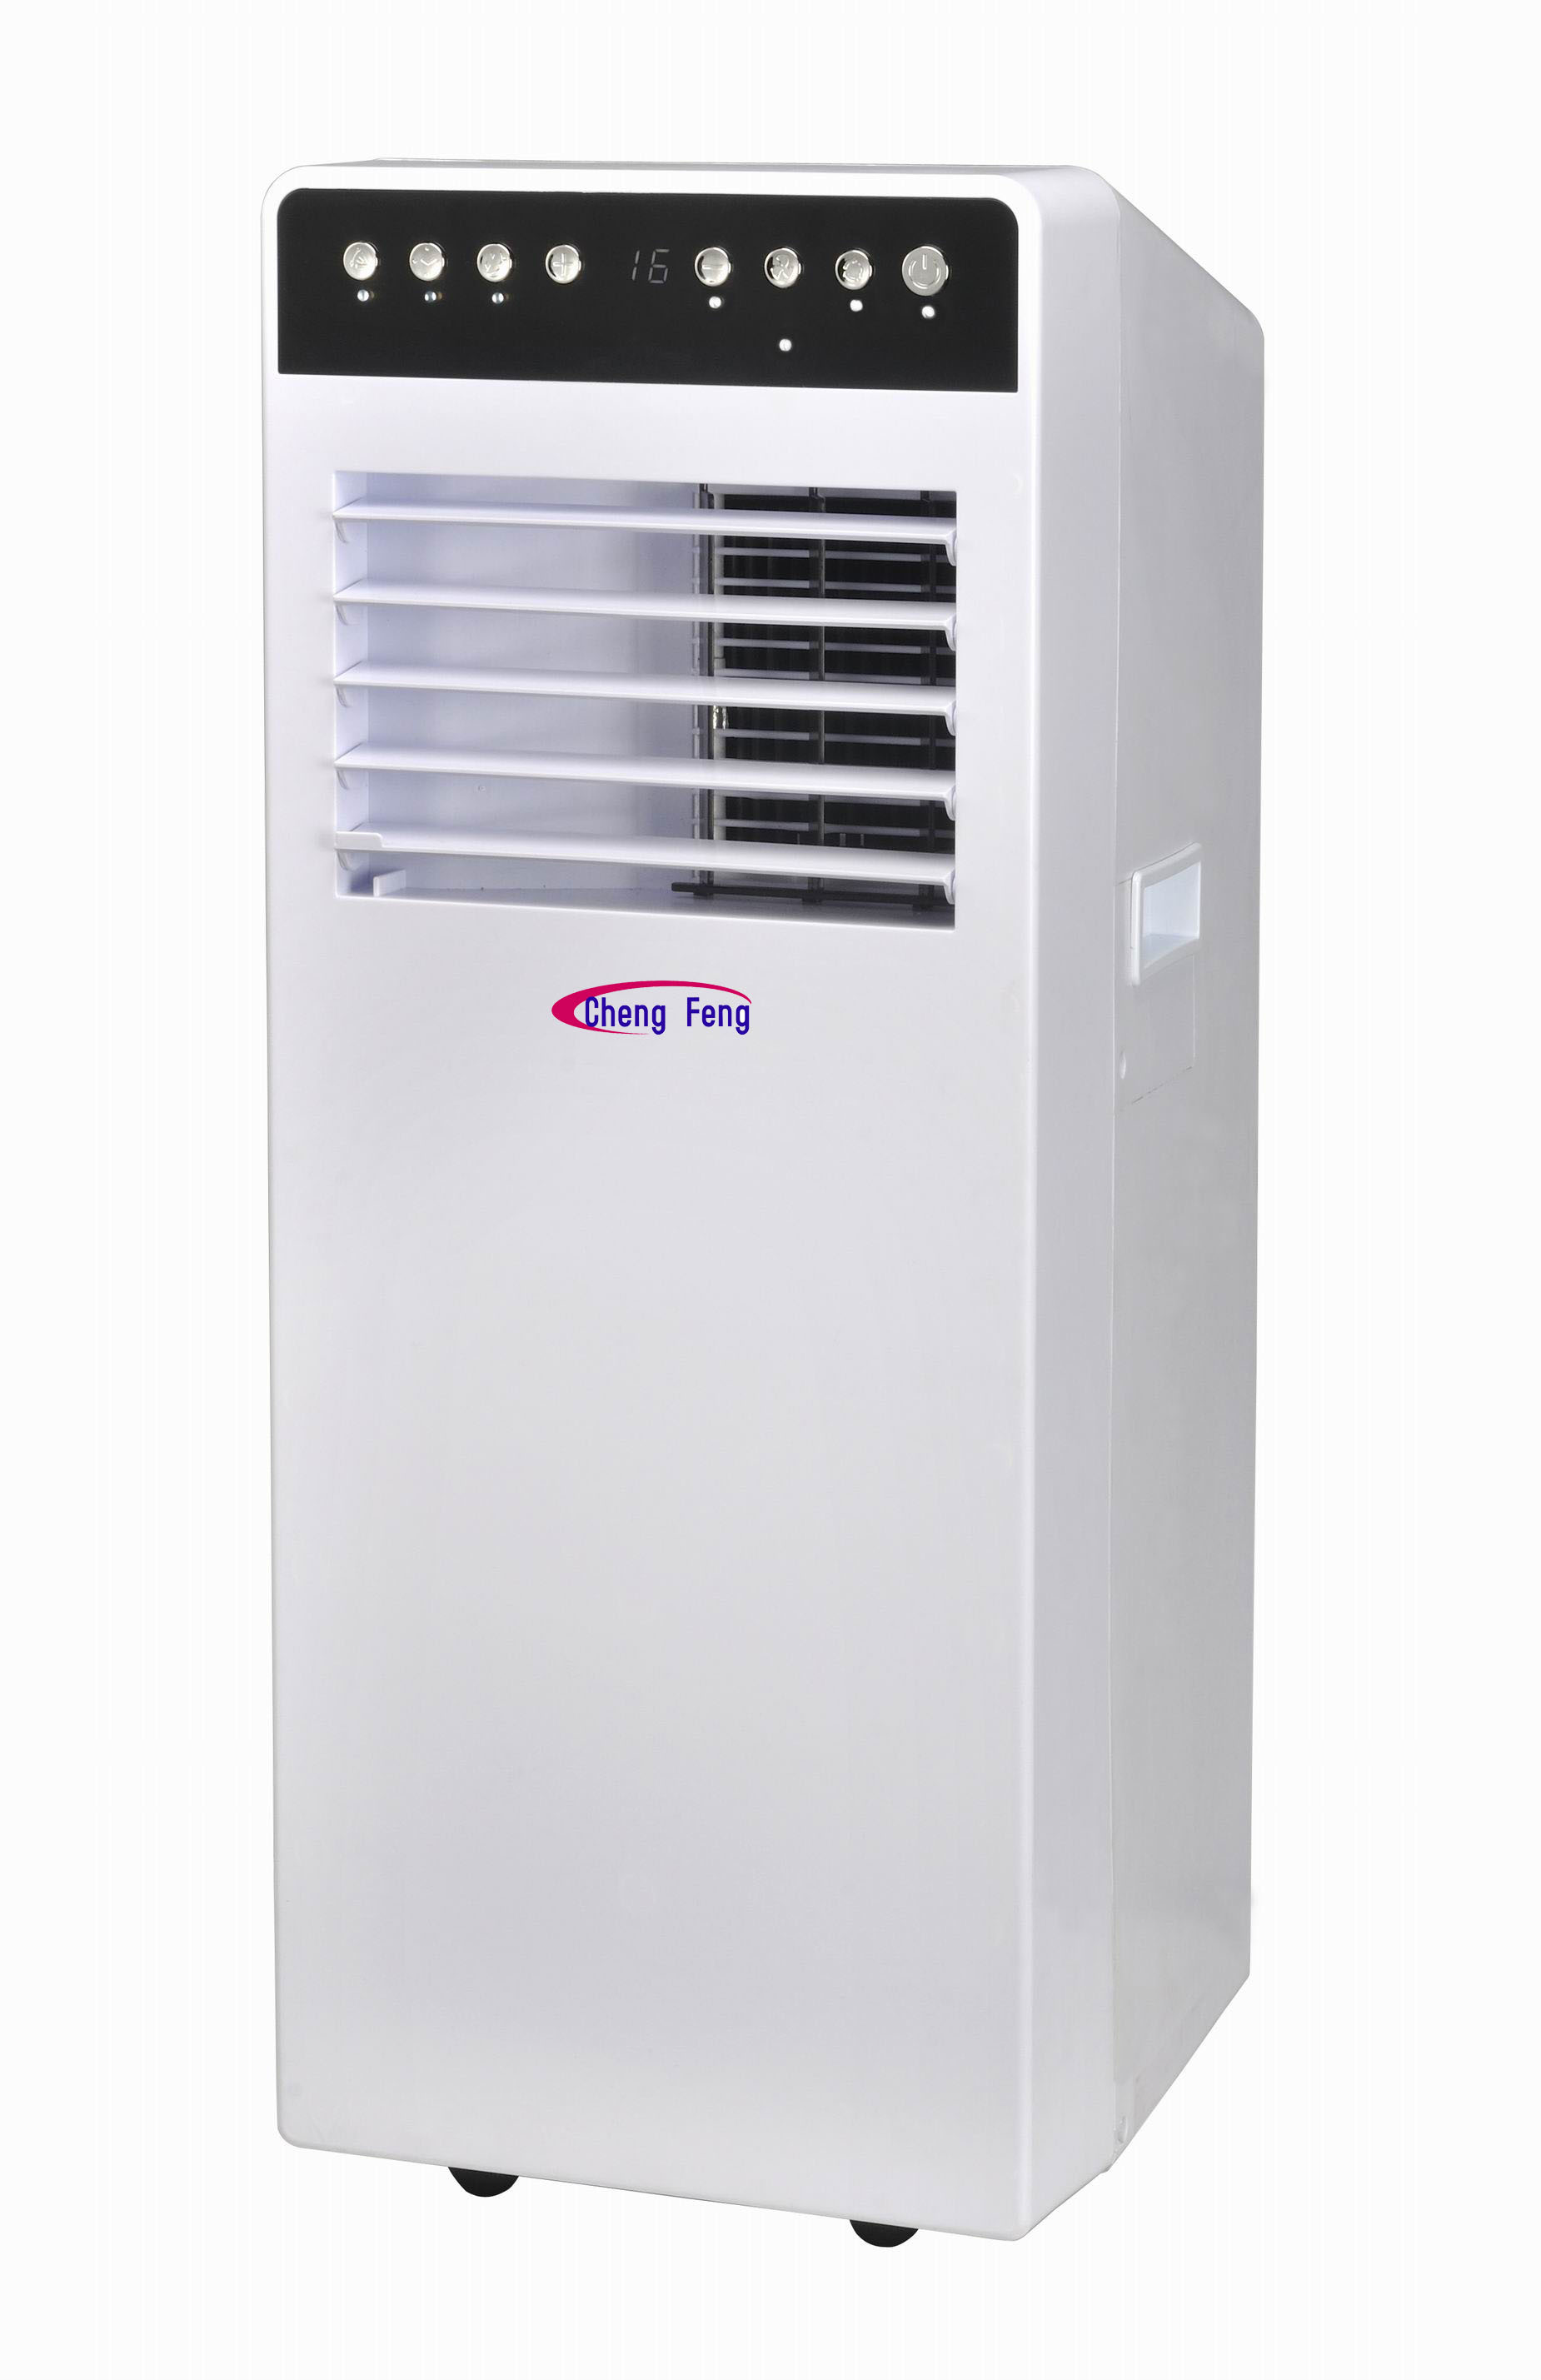 #A6255D China Mobile Air Conditioner (7000BTU 12000BTU) Photos  Top of The Line 13154 Mobile Home Air Conditioning picture with 1850x2857 px on helpvideos.info - Air Conditioners, Air Coolers and more